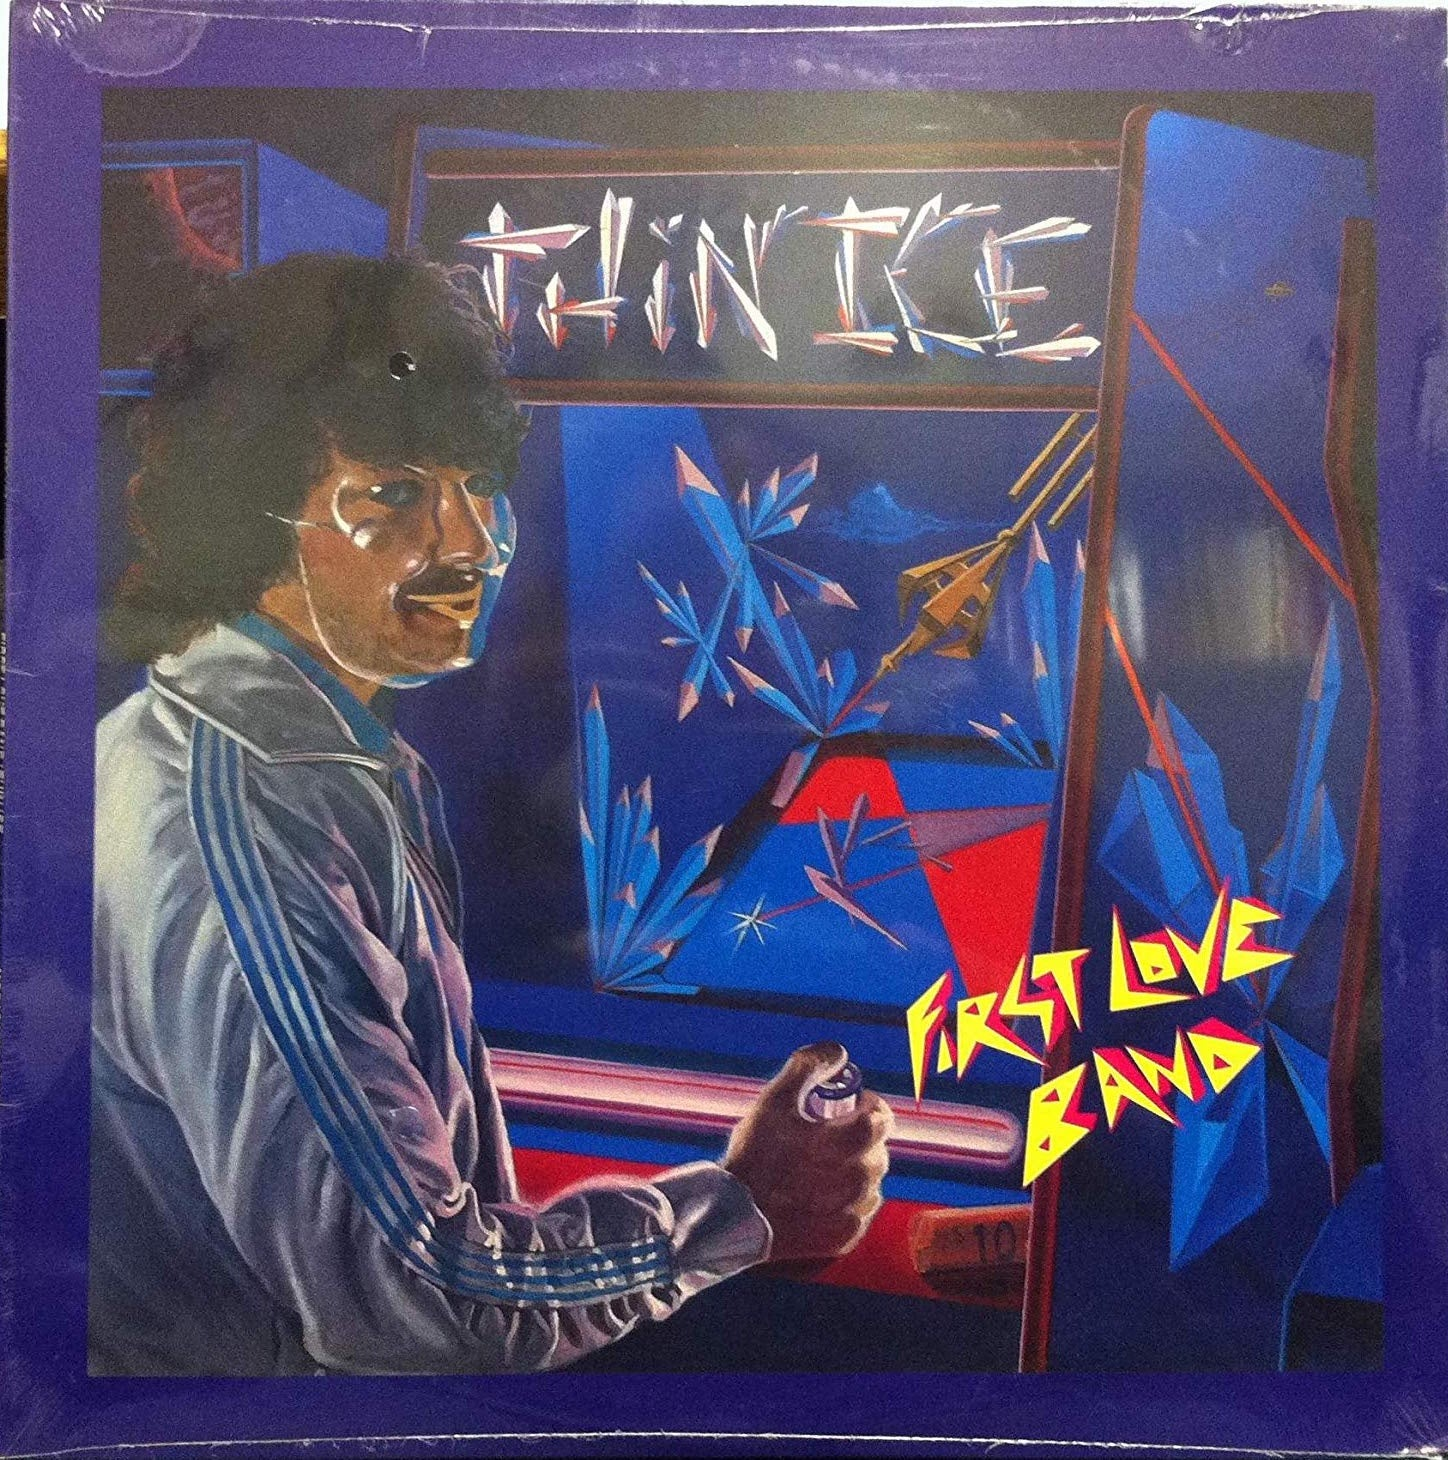 First Love Band ‎– Thin Ice - New Lp Record 1983 Morada USA Vinyl Original - Prog Rock